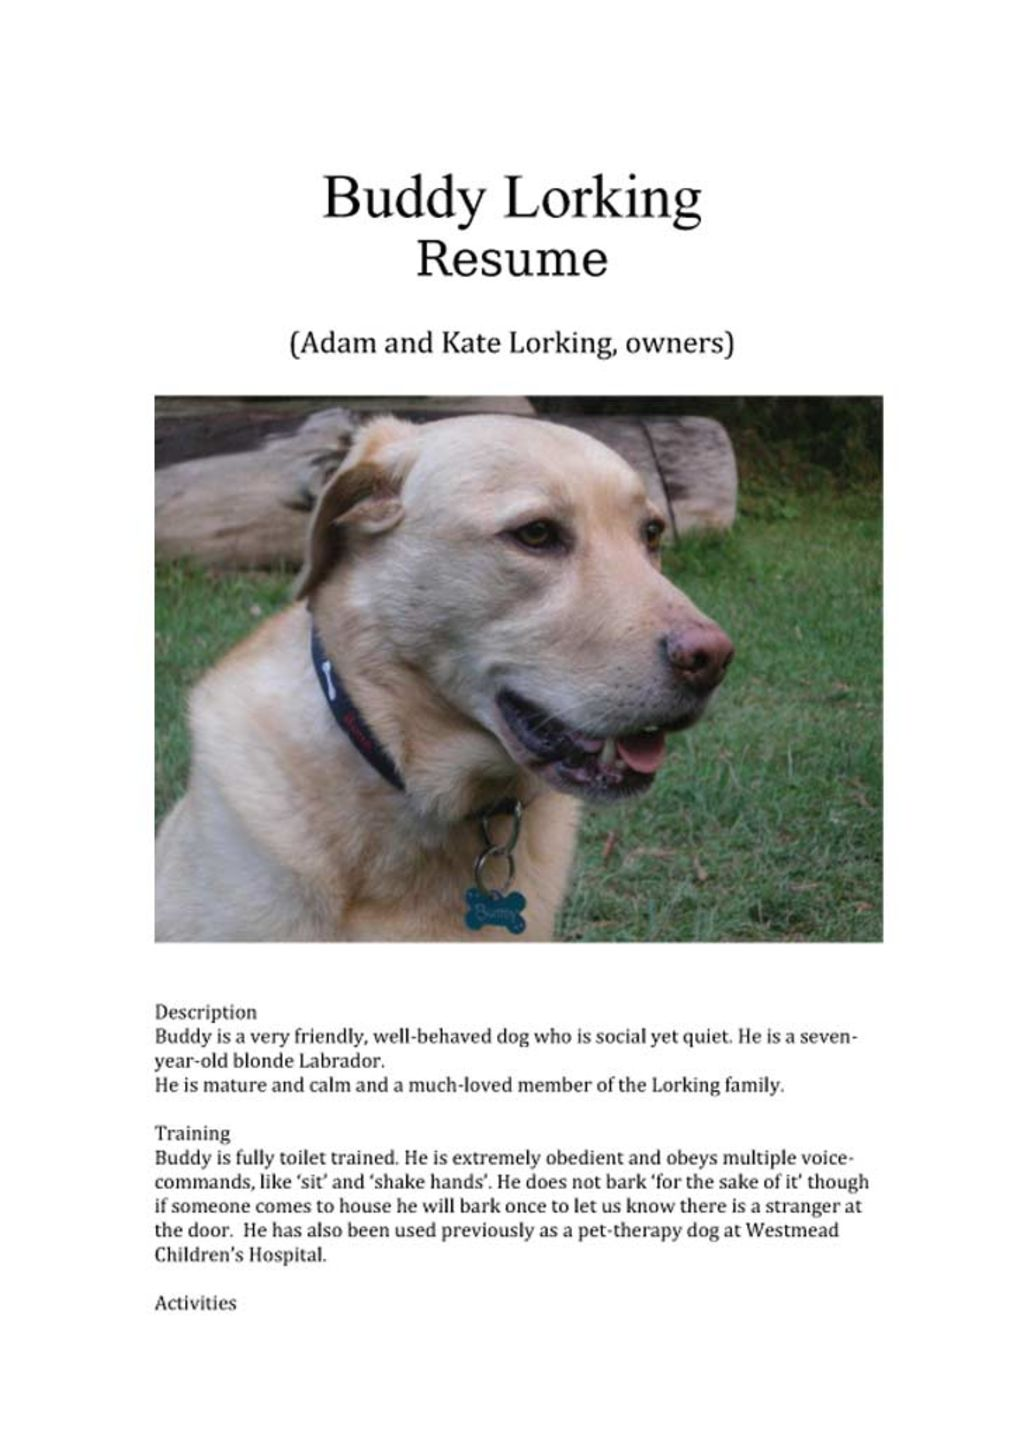 Looking for a kennel to rent ... Buddy has his own resume.